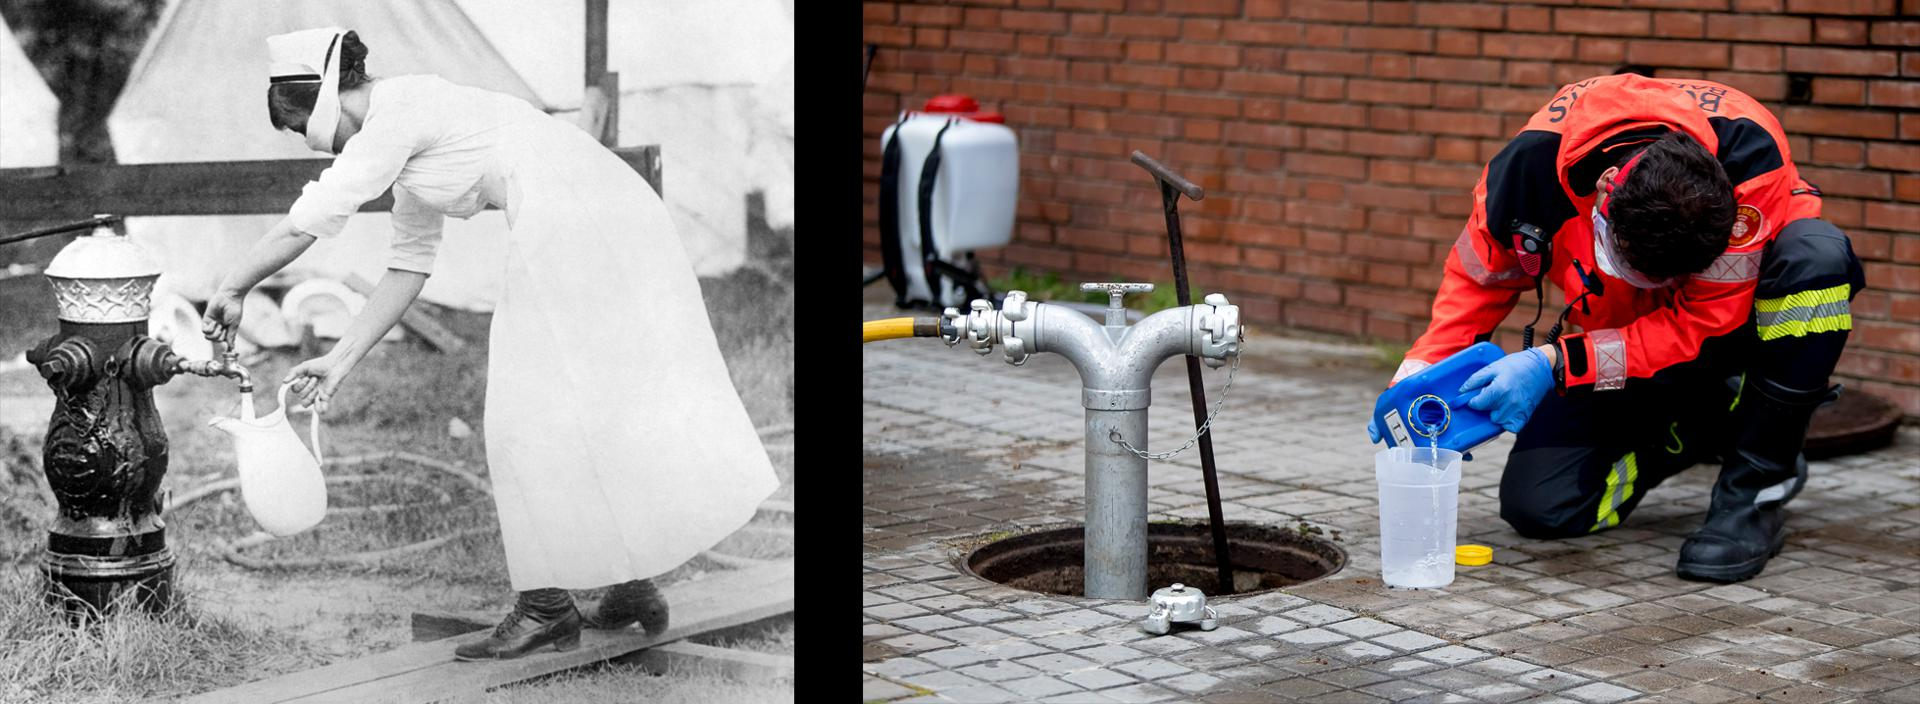 A Clean Start: Public health officials in 1918 preached the wisdom of hand washing. Today, first responders (like this Barcelona fire brigade member) ensure that water supplies are disinfected.